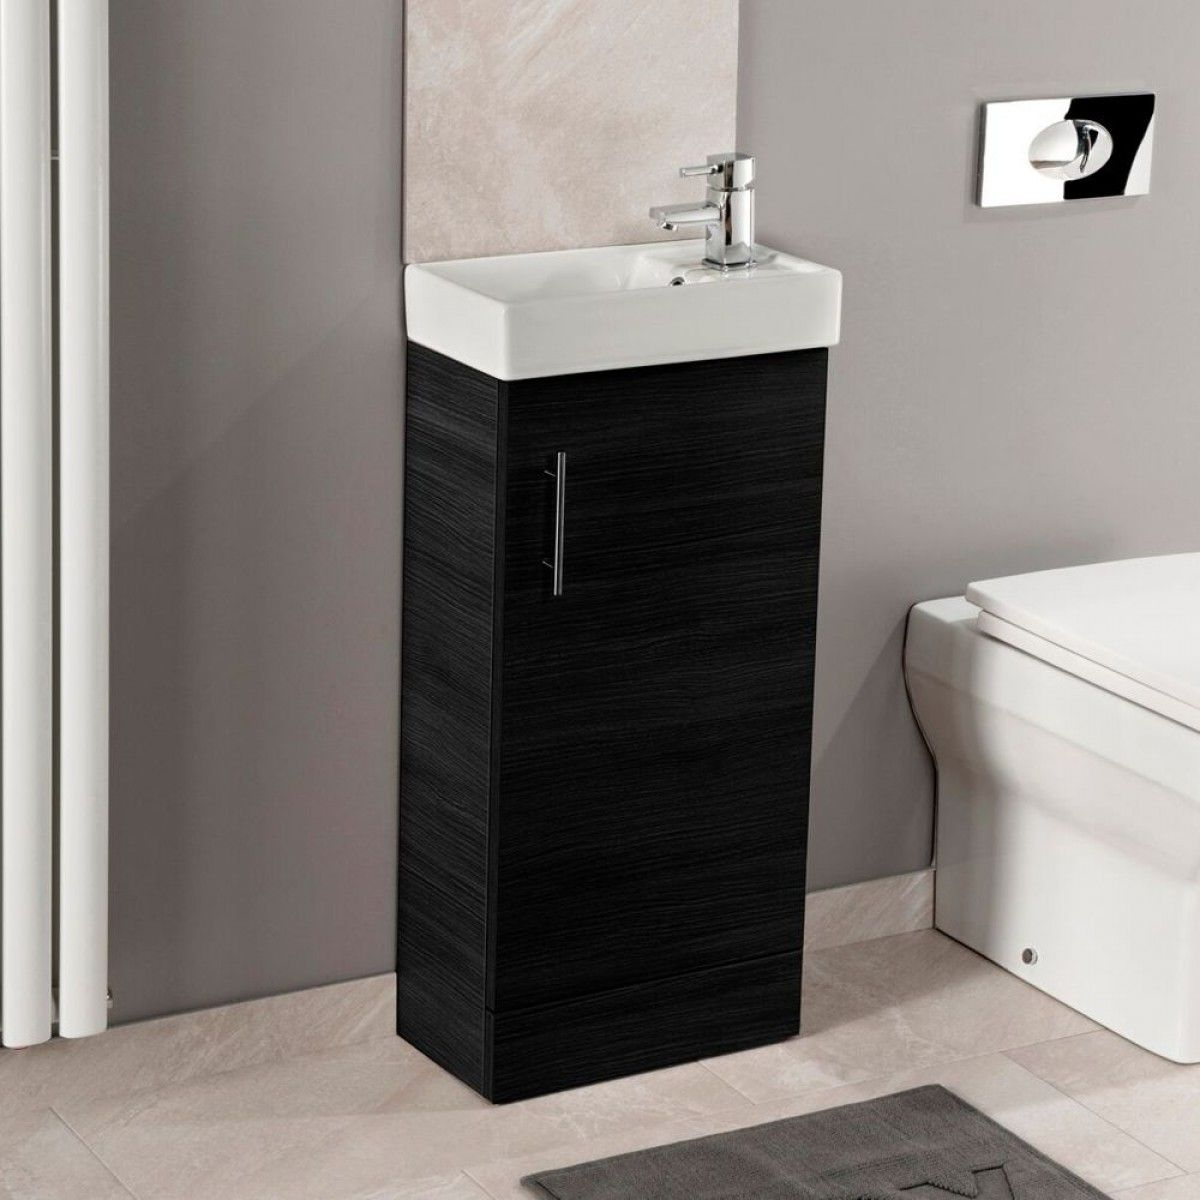 Maisie Compact 400mm Mini Cloakroom Vanity Unit Basin Black Ash Drench Cloakroom Vanity Unit Wall Hung Vanity Vanity Units